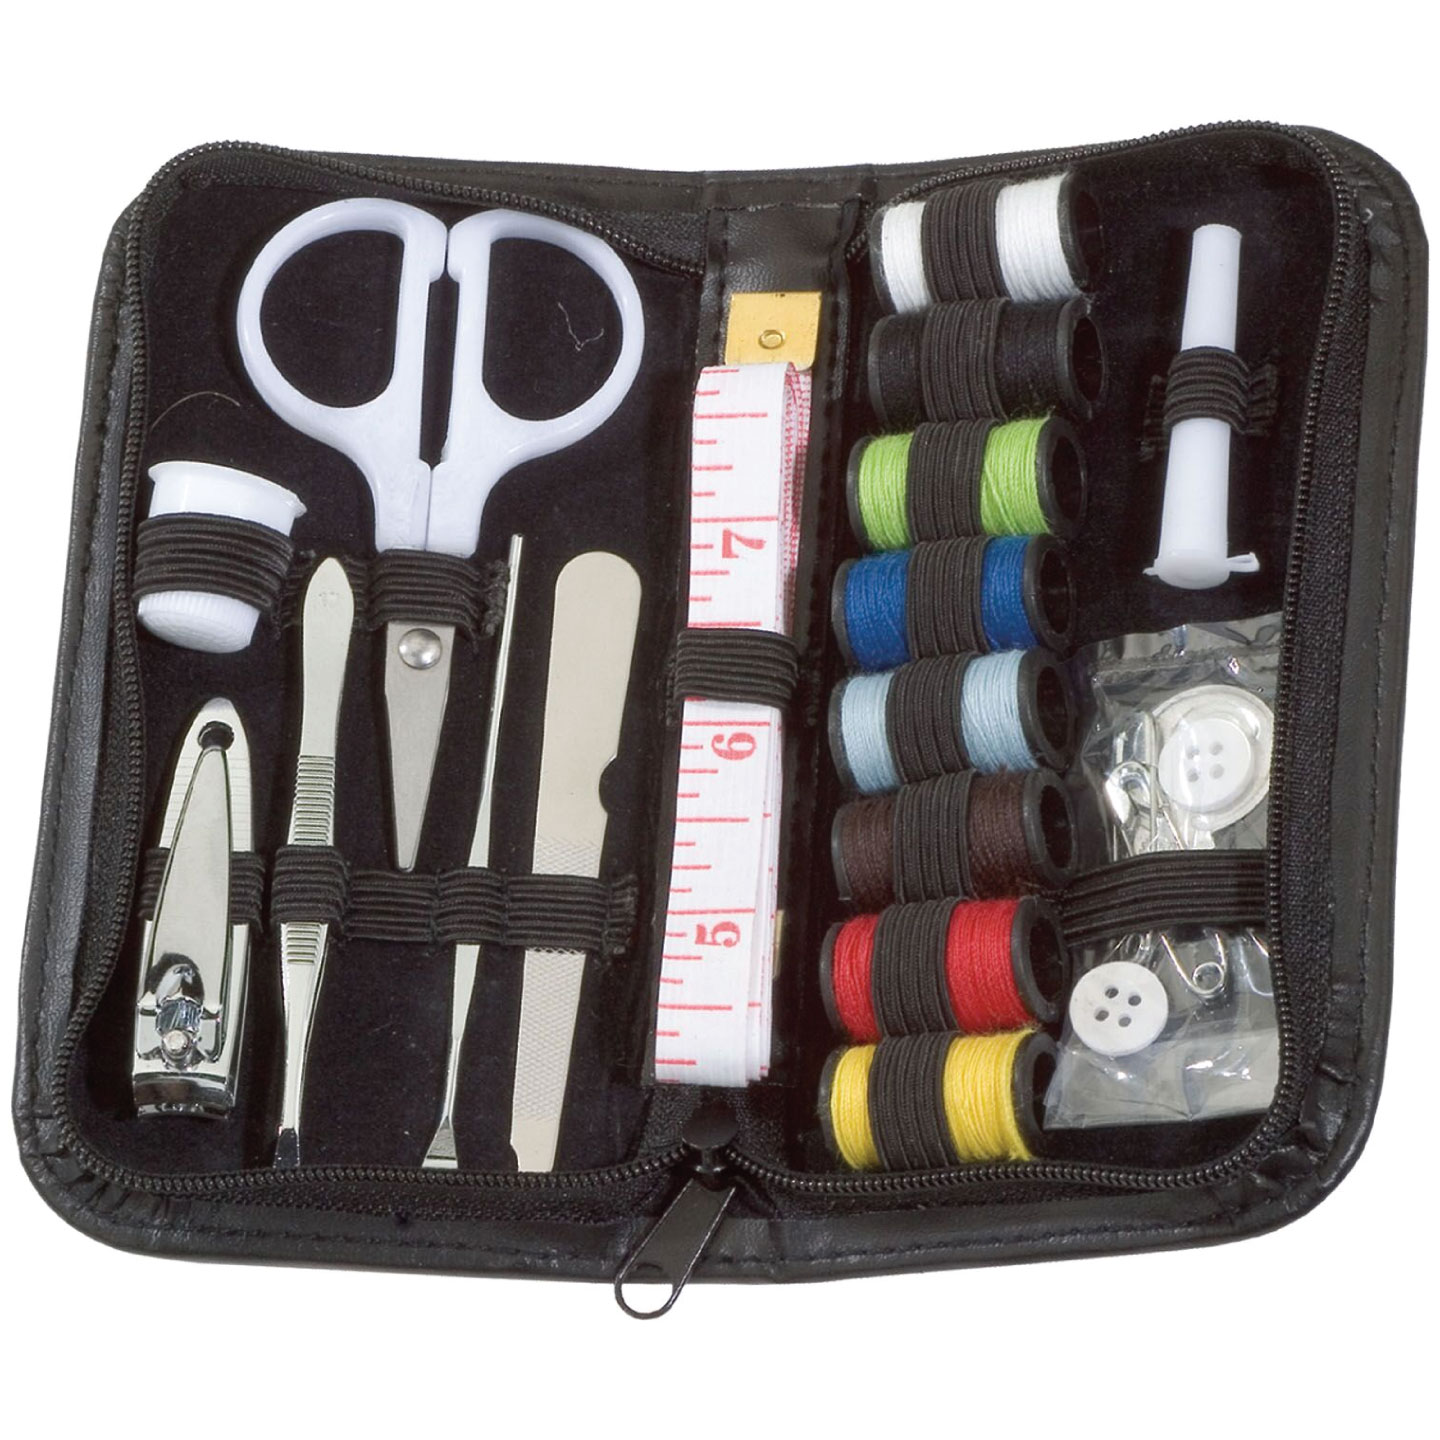 Manicure Sewing Kit - WCR4671